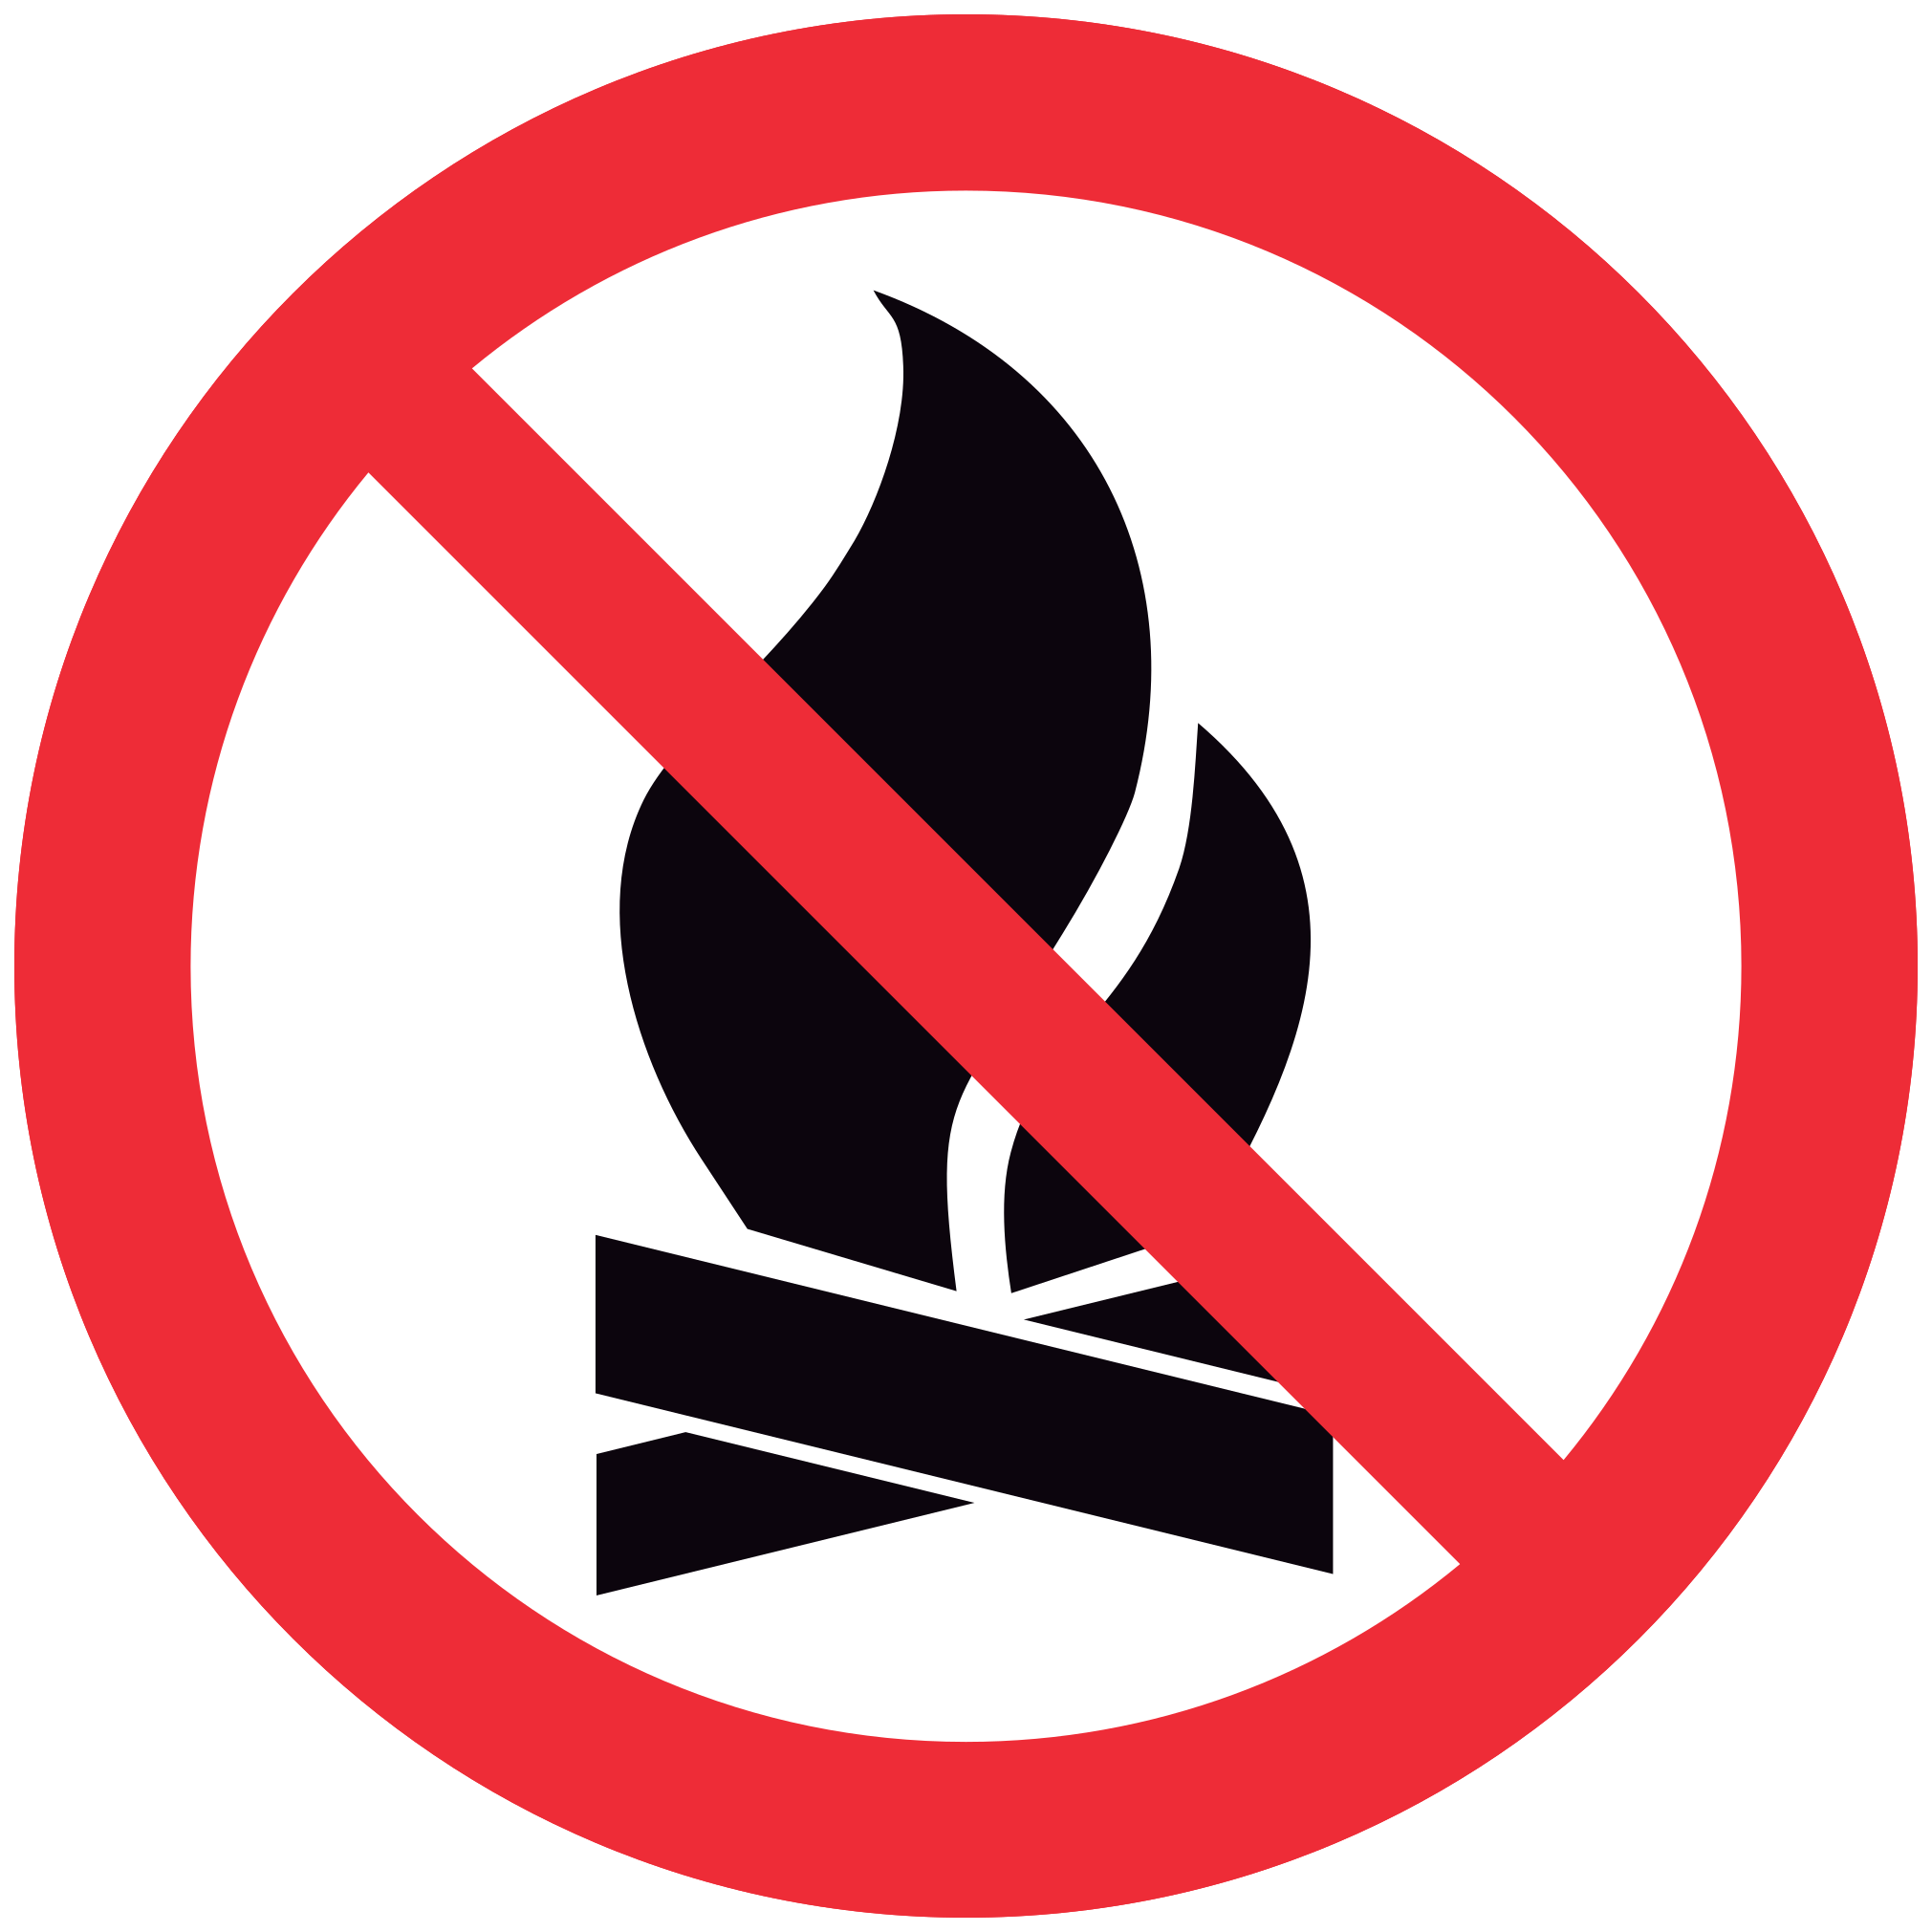 no-sign-fire-png